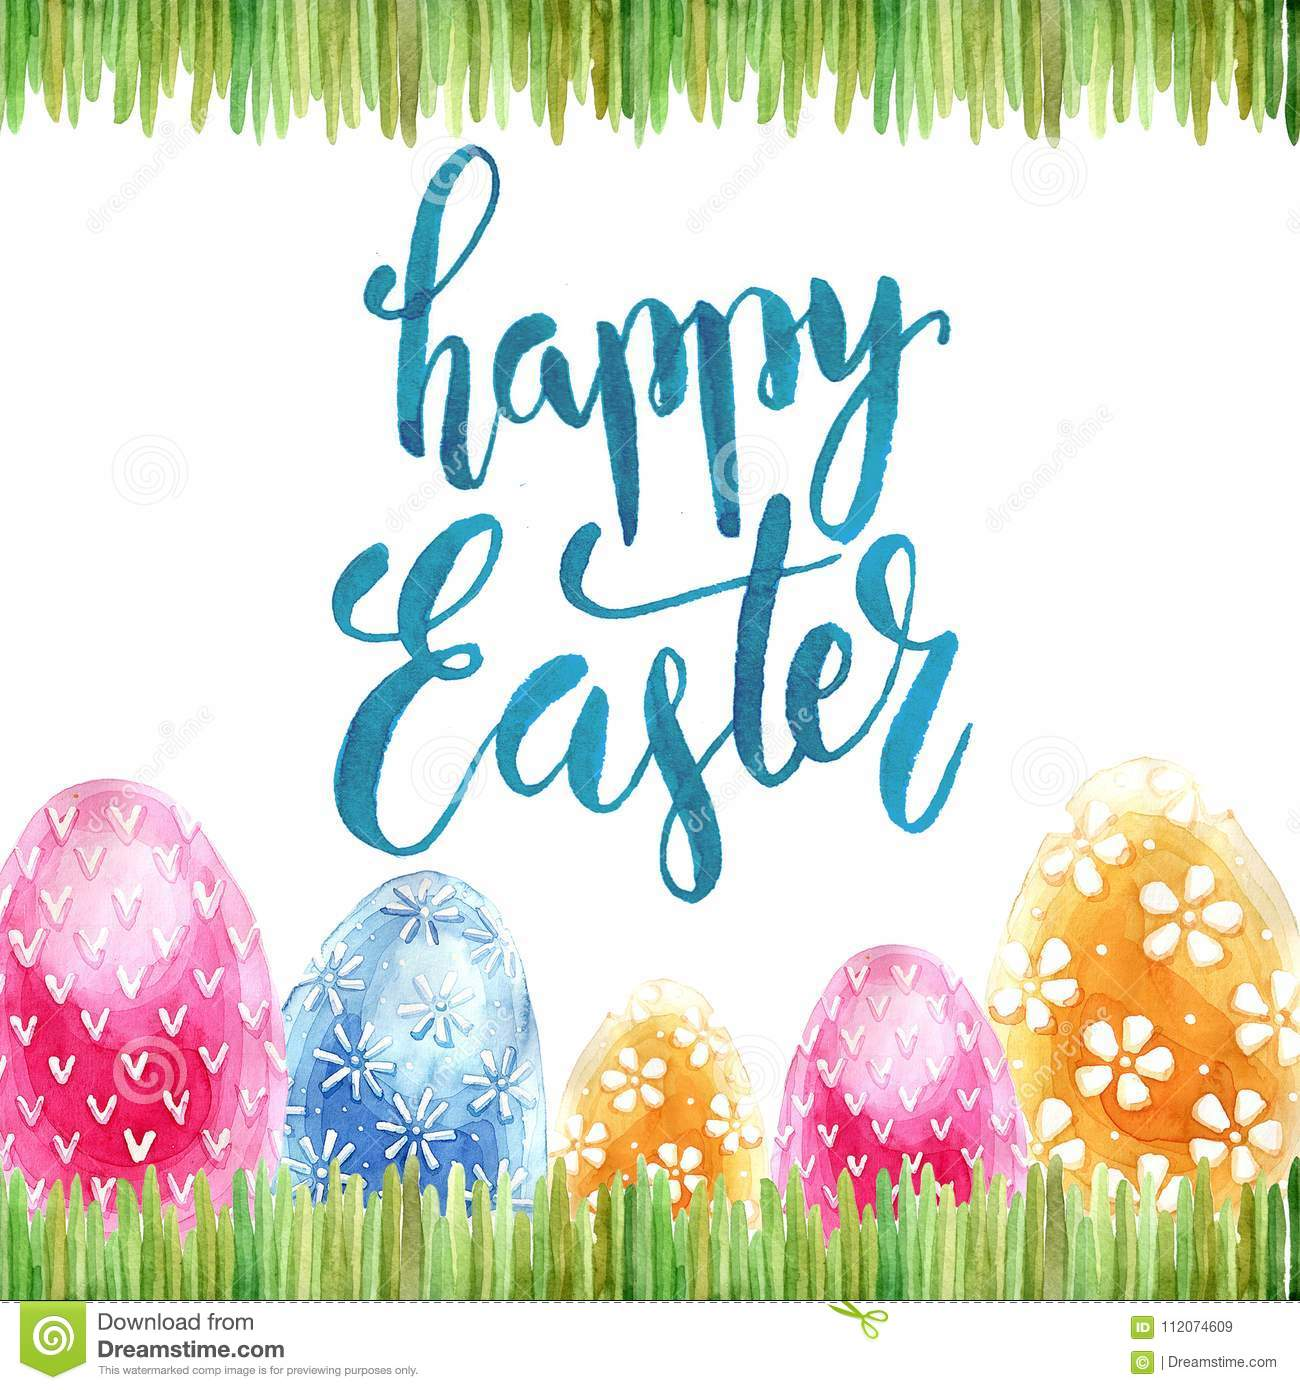 Watercolor easter holiday cards stock image image of message download watercolor easter holiday cards stock image image of message background 112074609 m4hsunfo